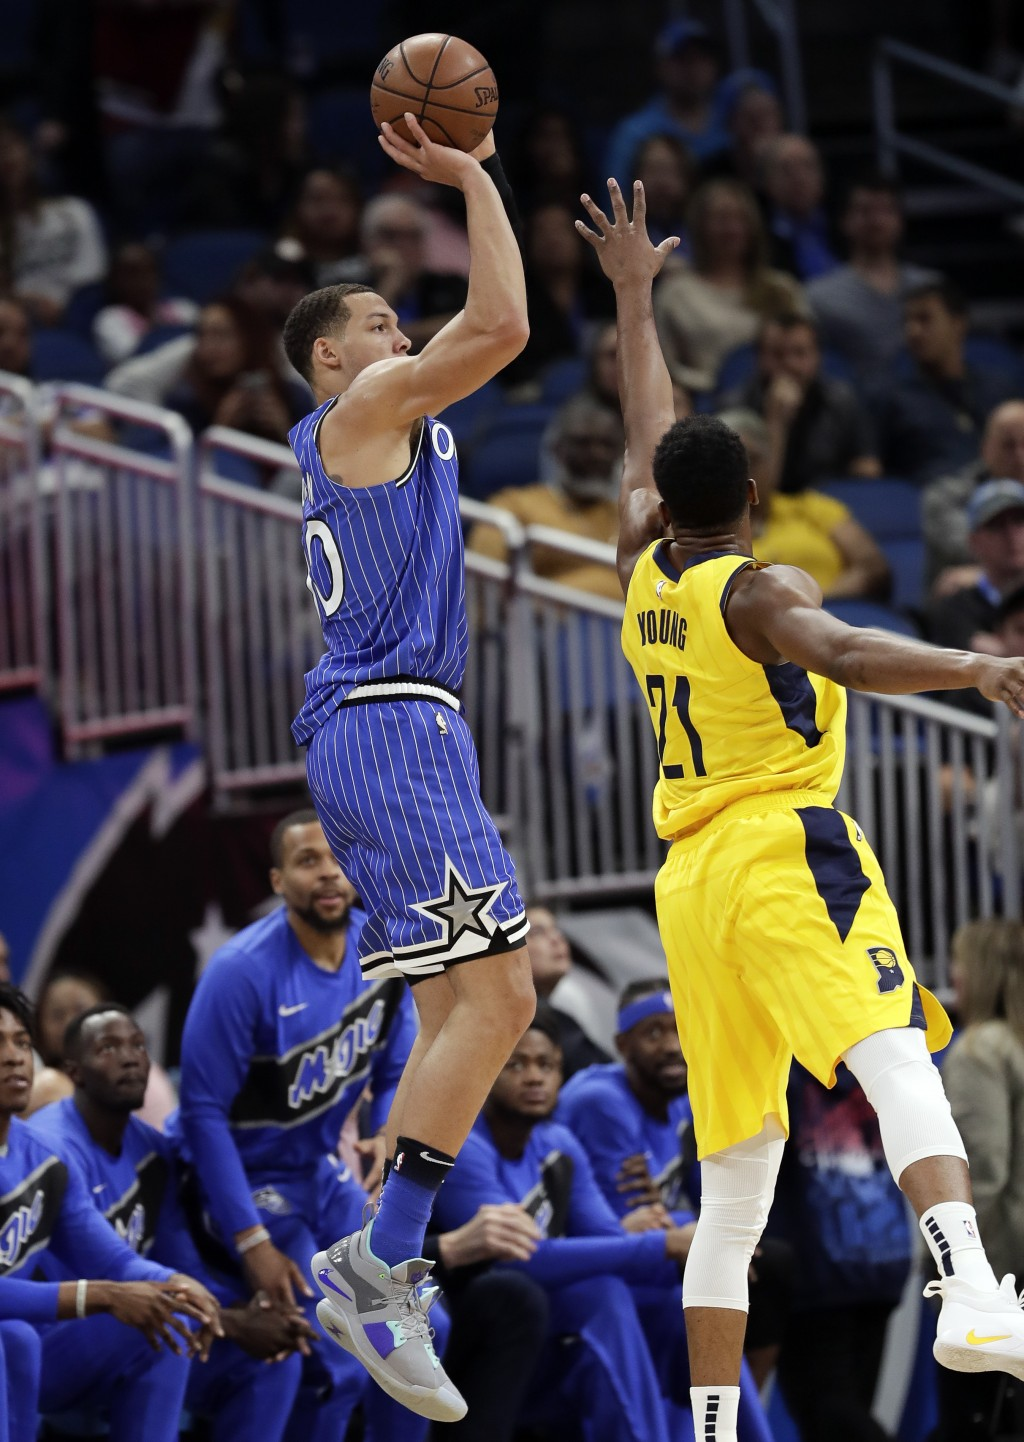 Orlando Magic's Aaron Gordon shoots over Indiana Pacers' Thaddeus Young (21) during the first half of an NBA basketball game Friday, Dec. 7, 2018, in ...